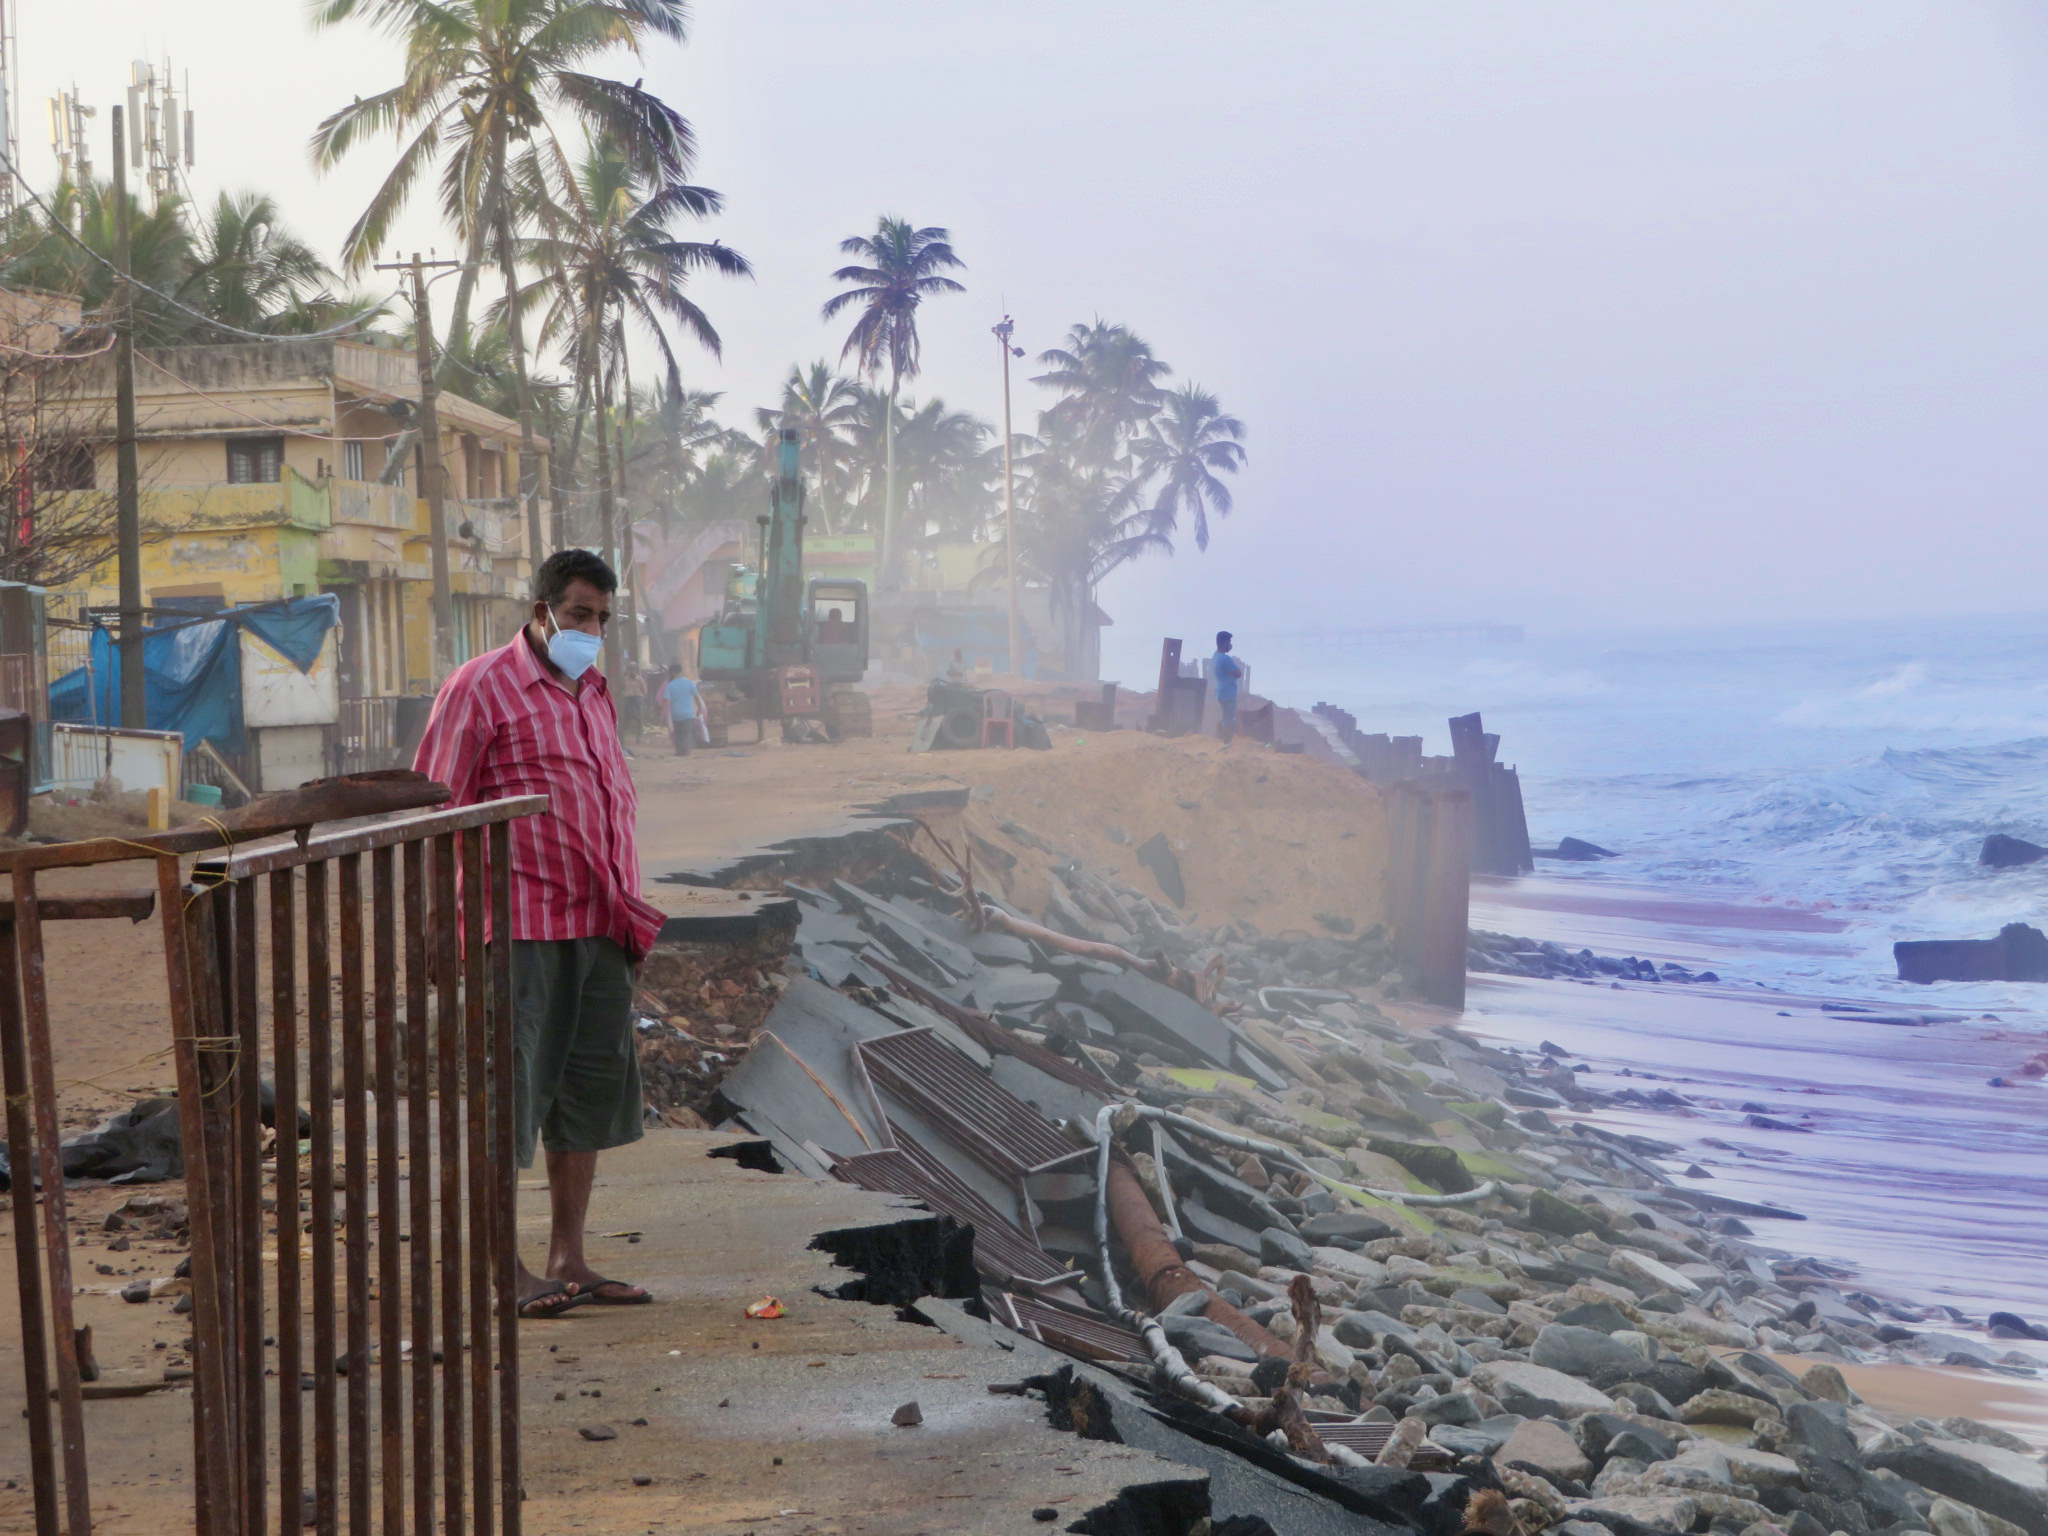 The shorefront at Shanghumukham Beach, Kerala, is eroding due to an altered regime of sediment movement